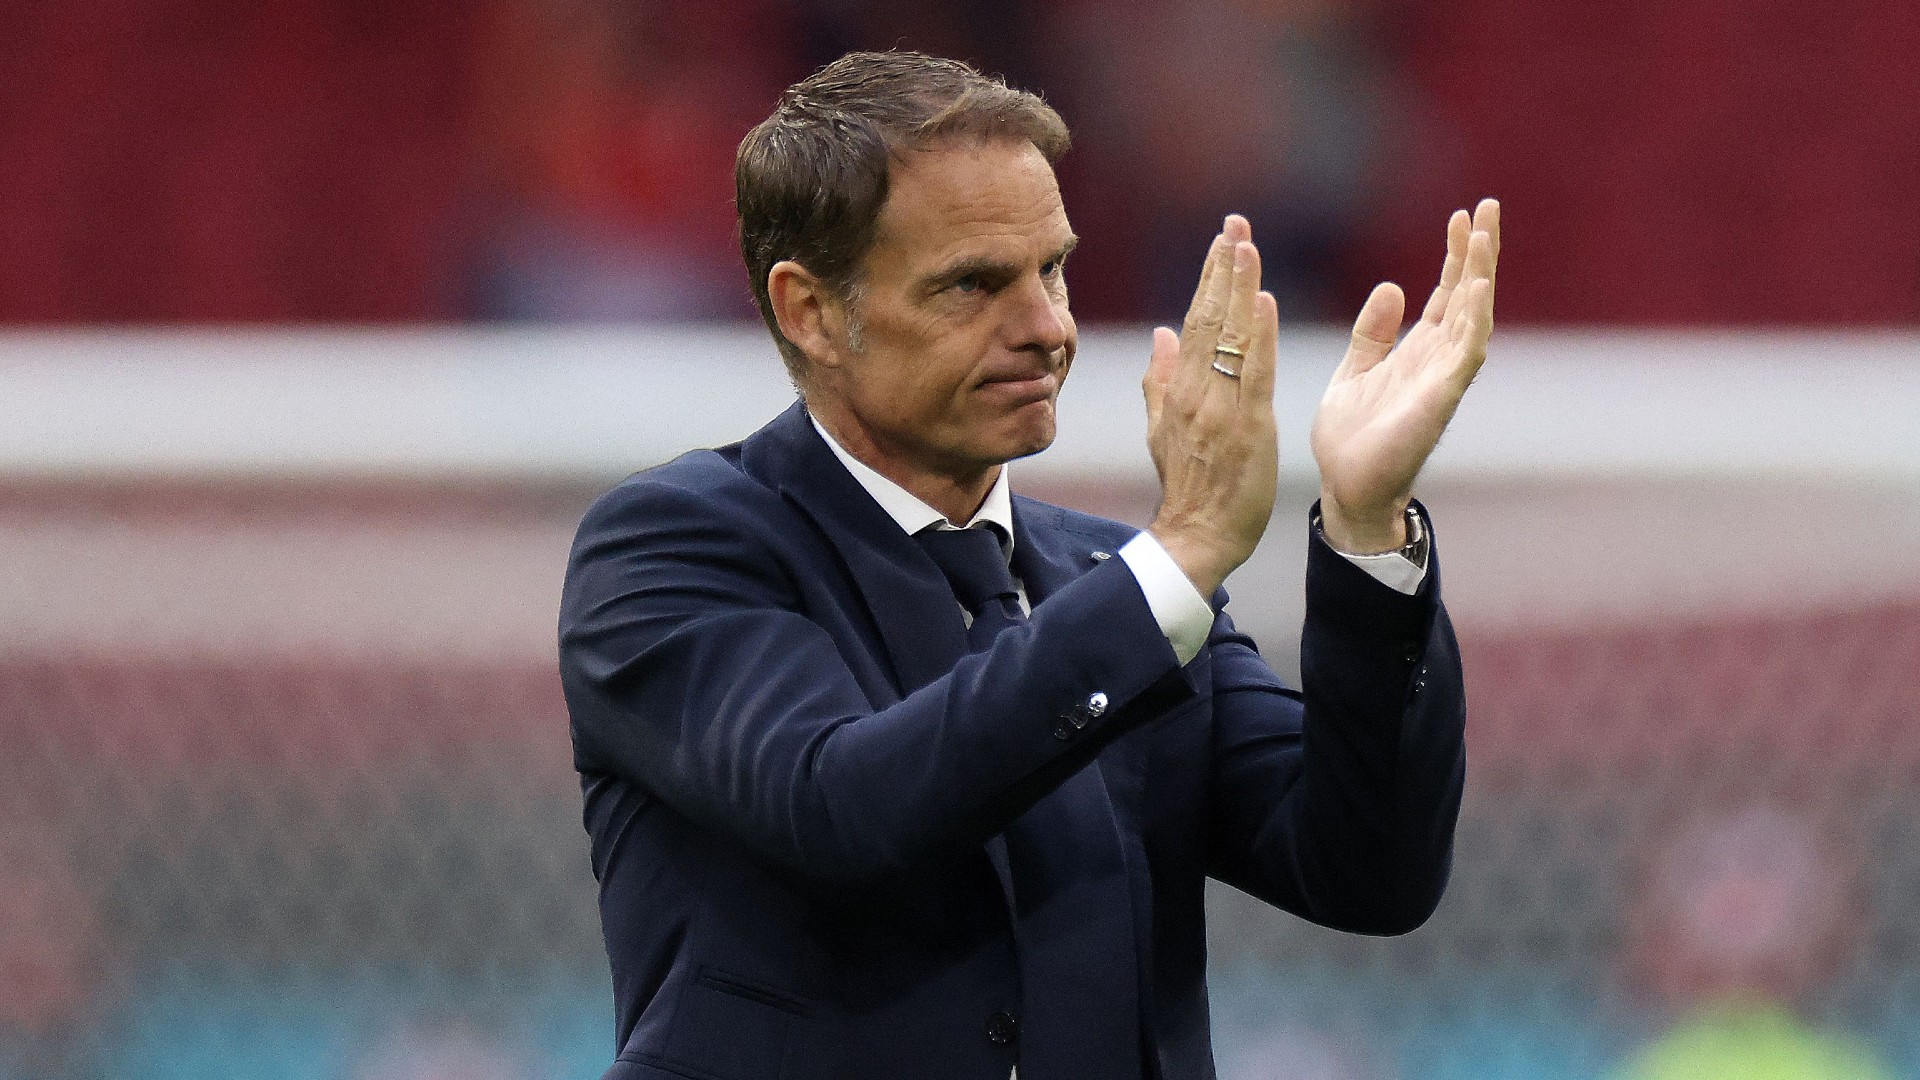 De Boer steps down as Netherlands head coach following disappointing Euro 2020 campaign